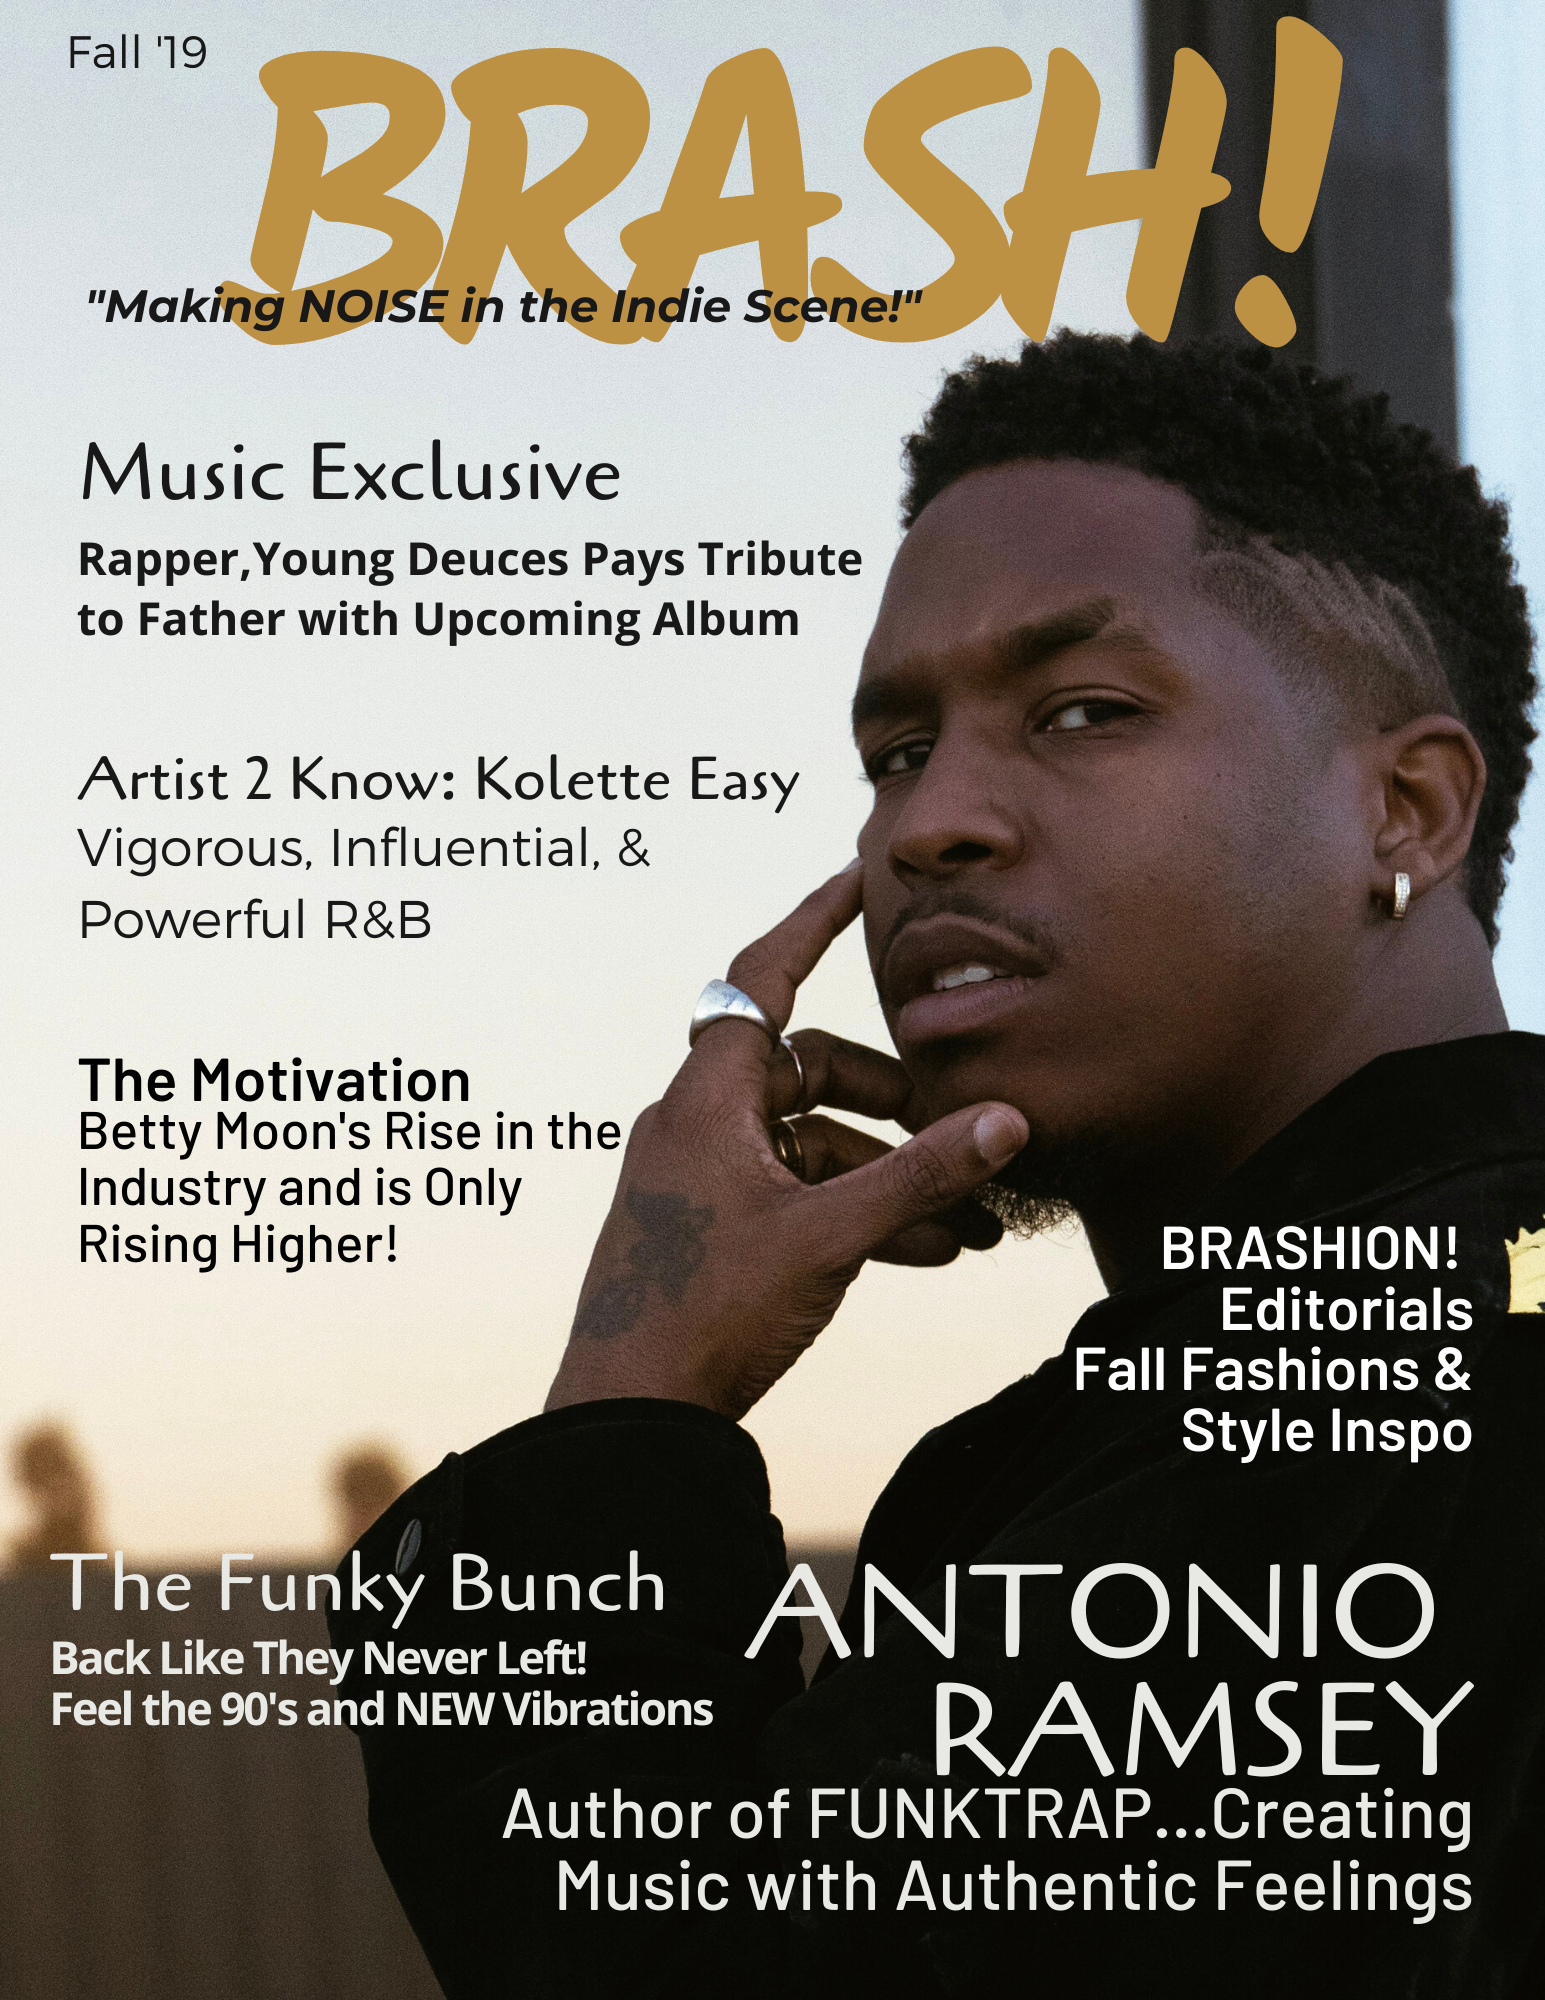 Fall 19 BRASH! Magazine ft. Antonio Ramsey